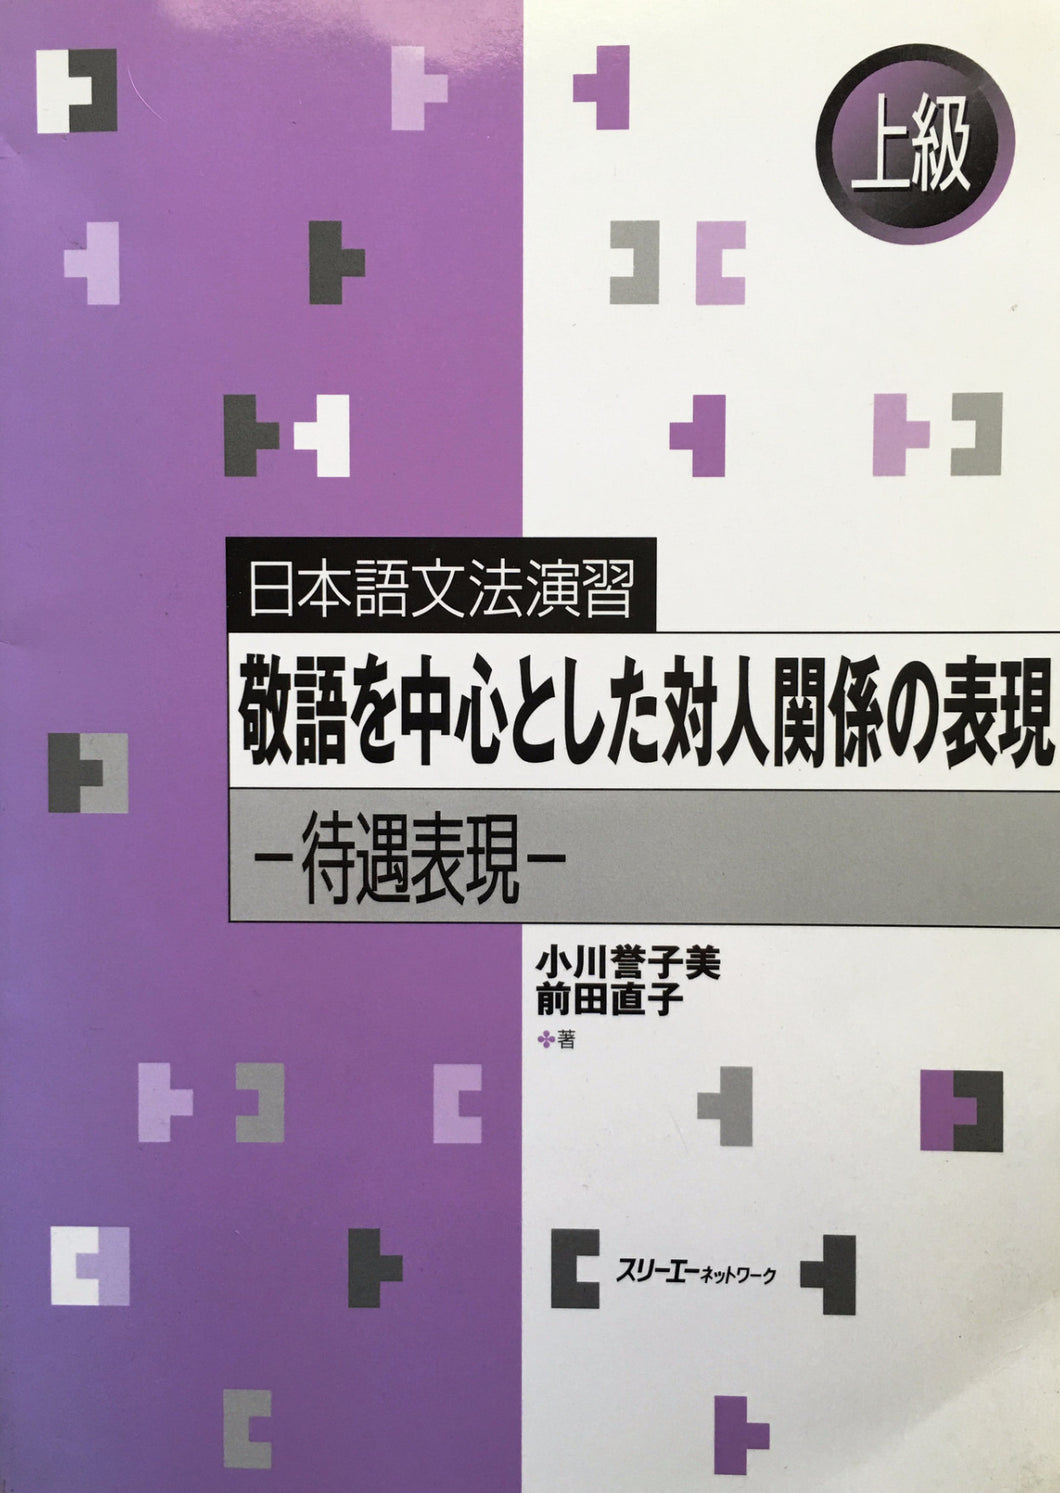 CLOSEOUT: 敬語を中心とした対人関係の表現 - The Japan Shop